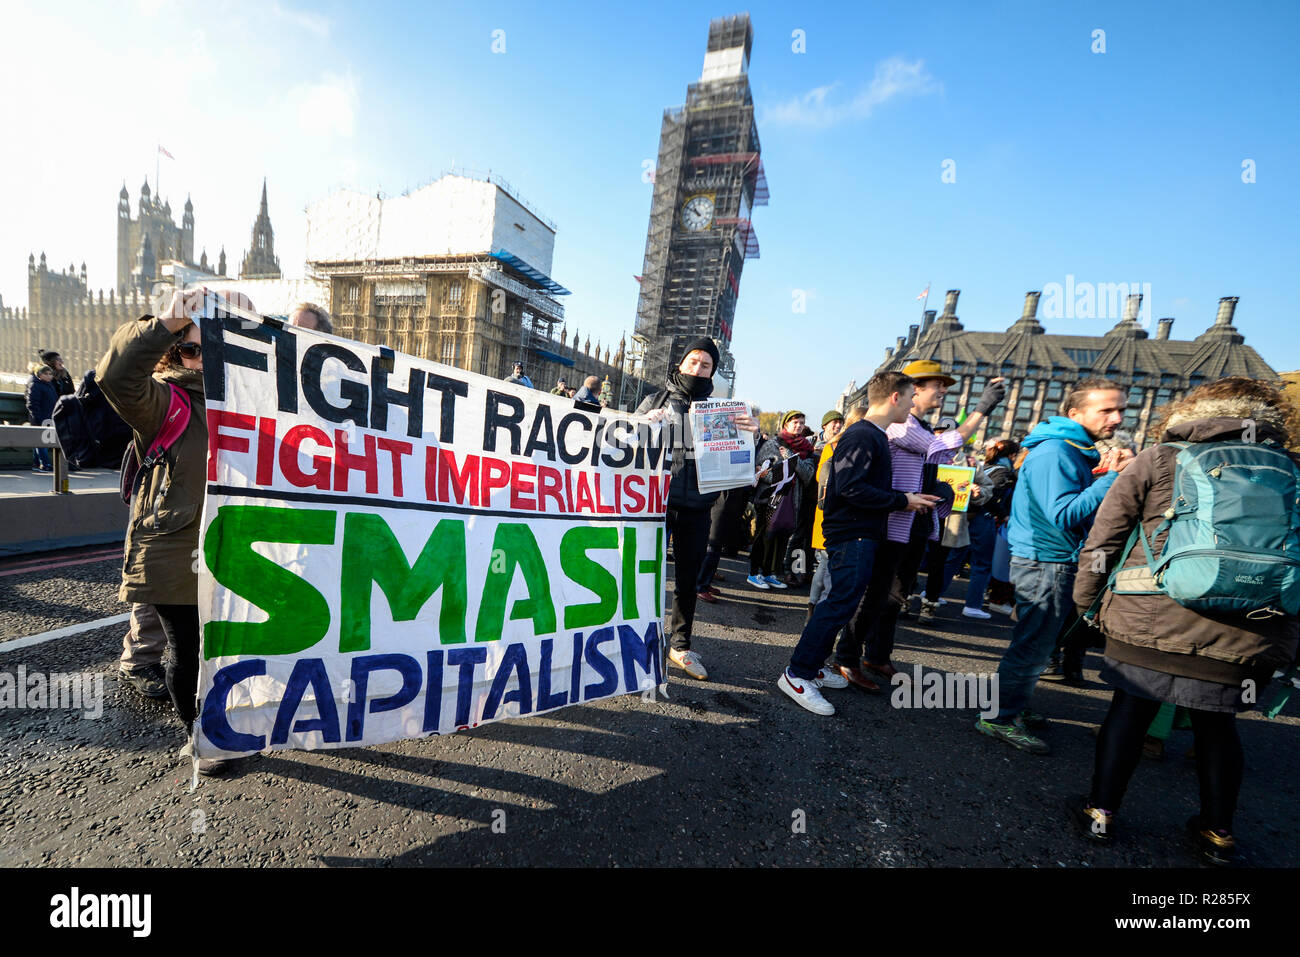 Westminster Bridge, London, UK. Organised by Extinction Rebellion, a protest is underway to 'rebel against the British Government for criminal inaction in the face of climate change catastrophe and ecological collapse'. Protesters are blocking the Thames bridges of Westminster, Waterloo, Southwark, Blackfriars and Lambeth thereby disrupting traffic - Stock Image